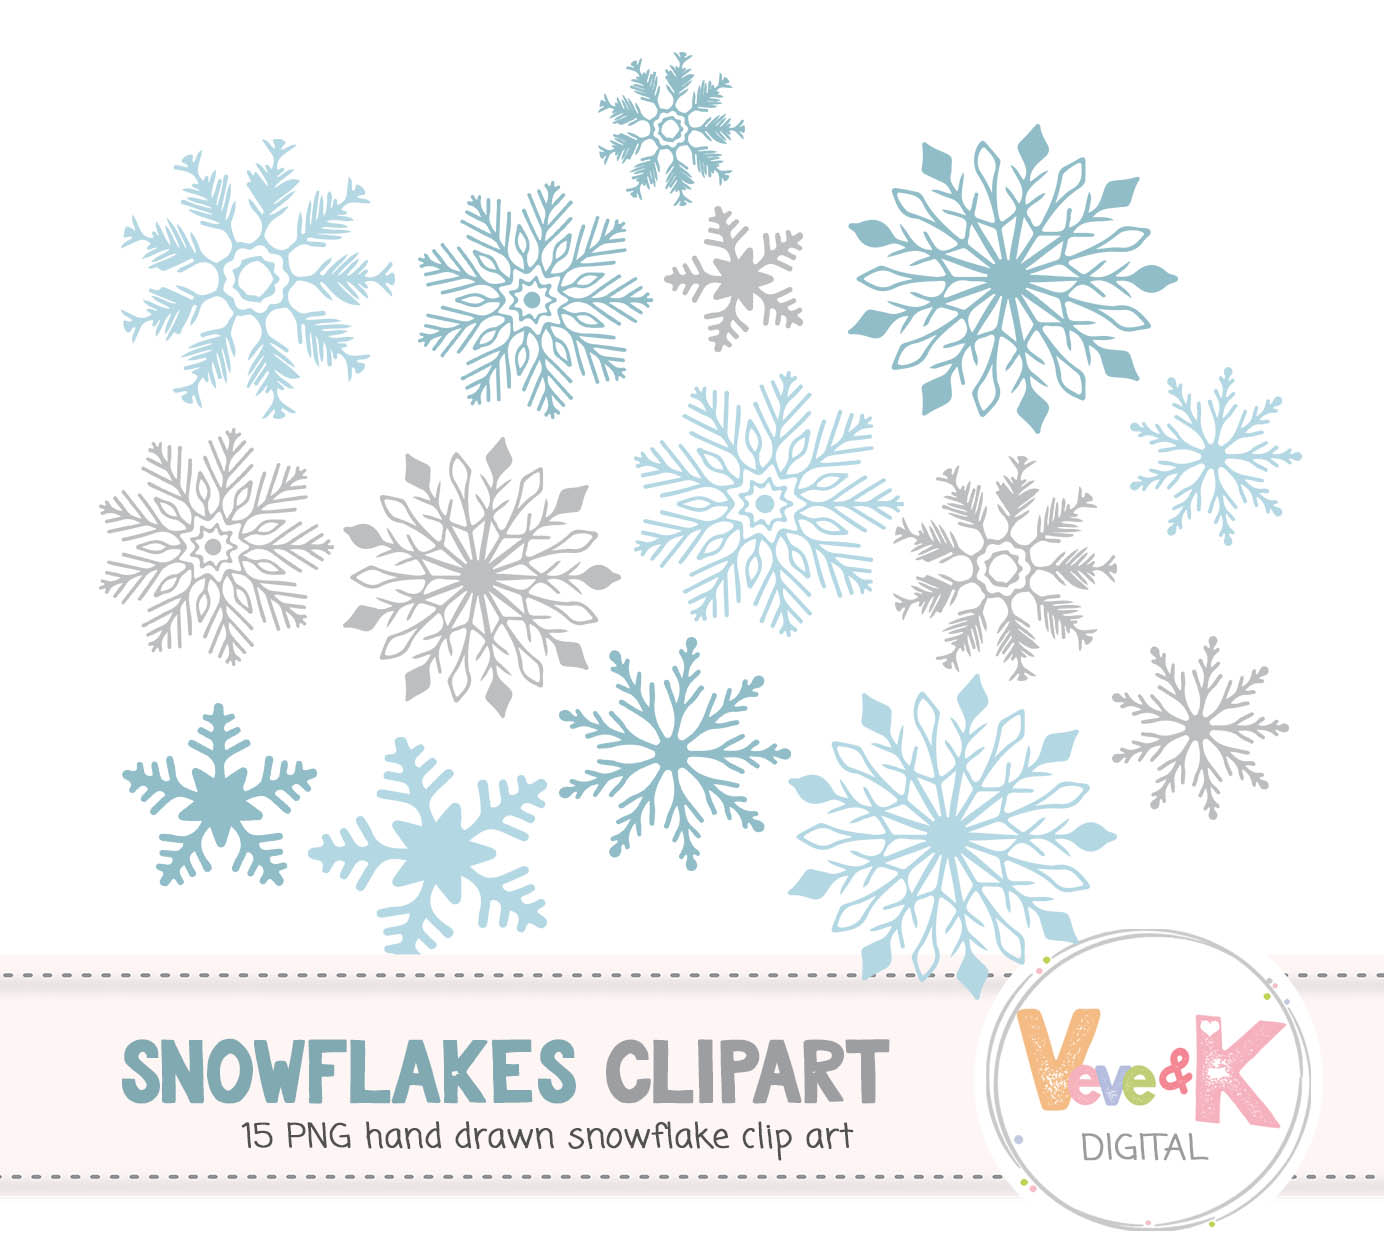 Winter clipart snow flakes graphic black and white stock Snowflakes Clipart, Snowflakes Digital Art, Hand drawn Snowflakes Christmas  Card Overlay, Winter Clipart, Hand drawn Clipart graphic black and white stock